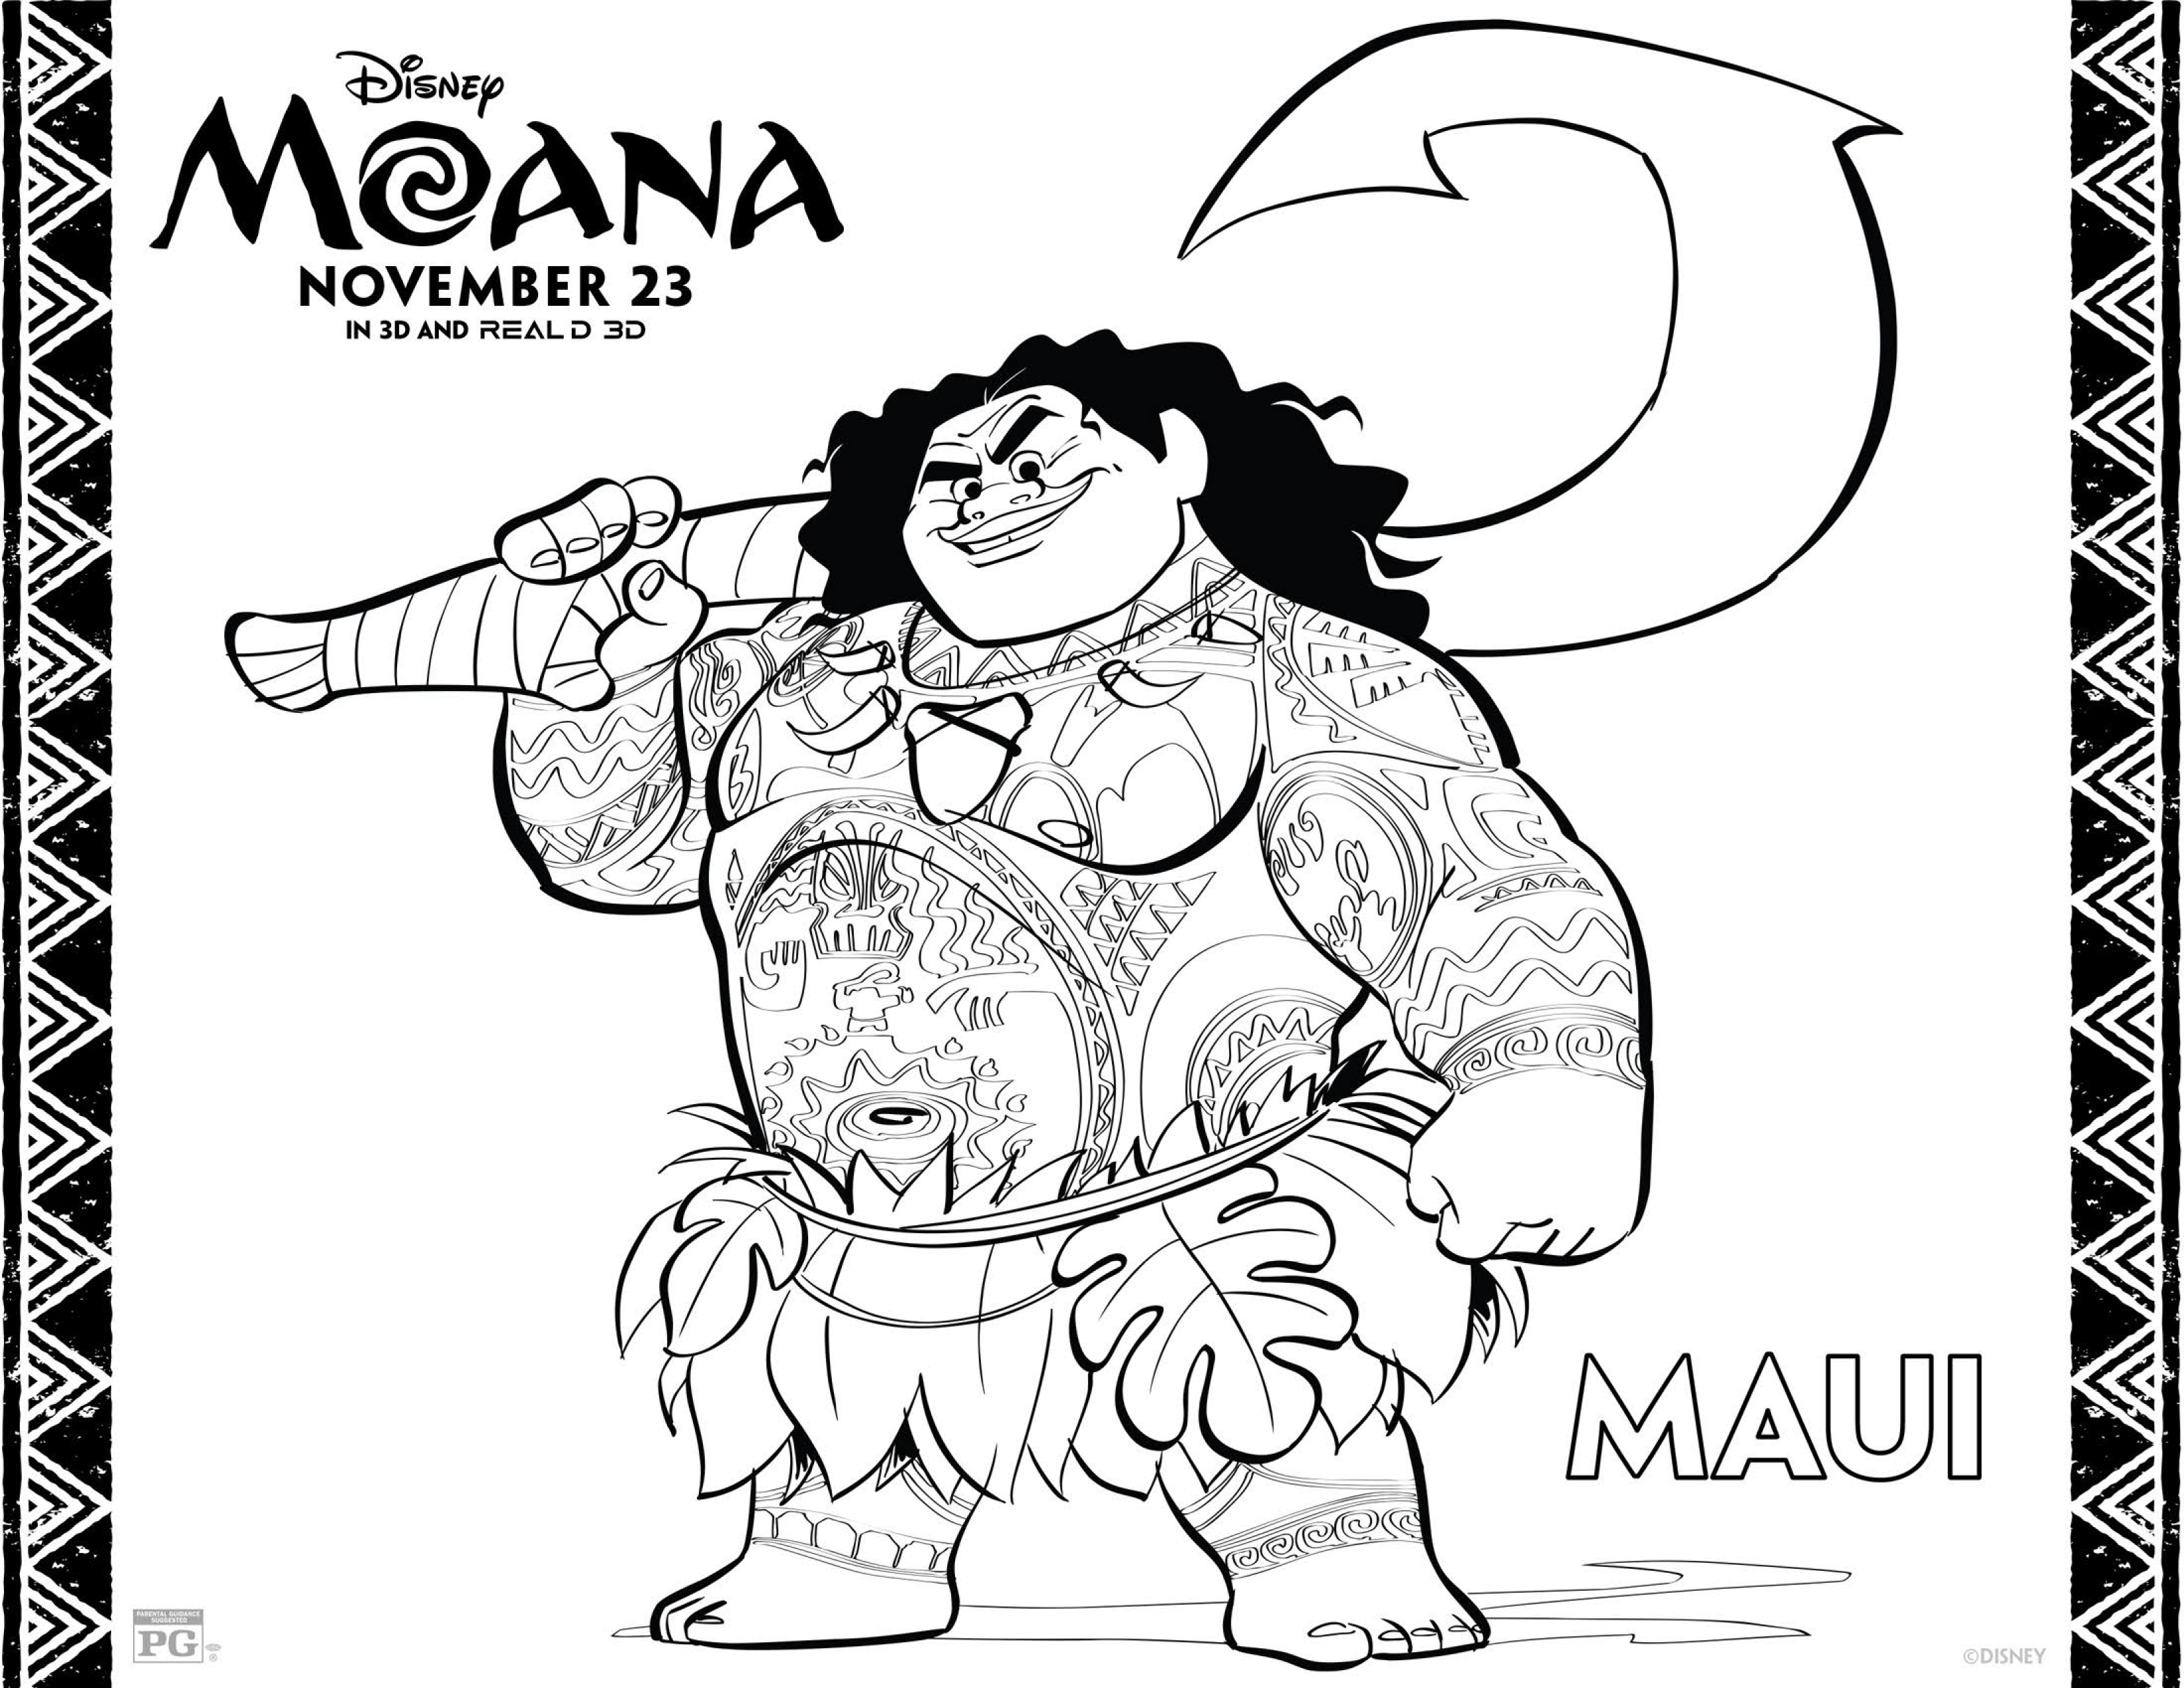 Moana Coloring Pages - Best Coloring Pages For Kids - Moana Coloring Pages Free Printable